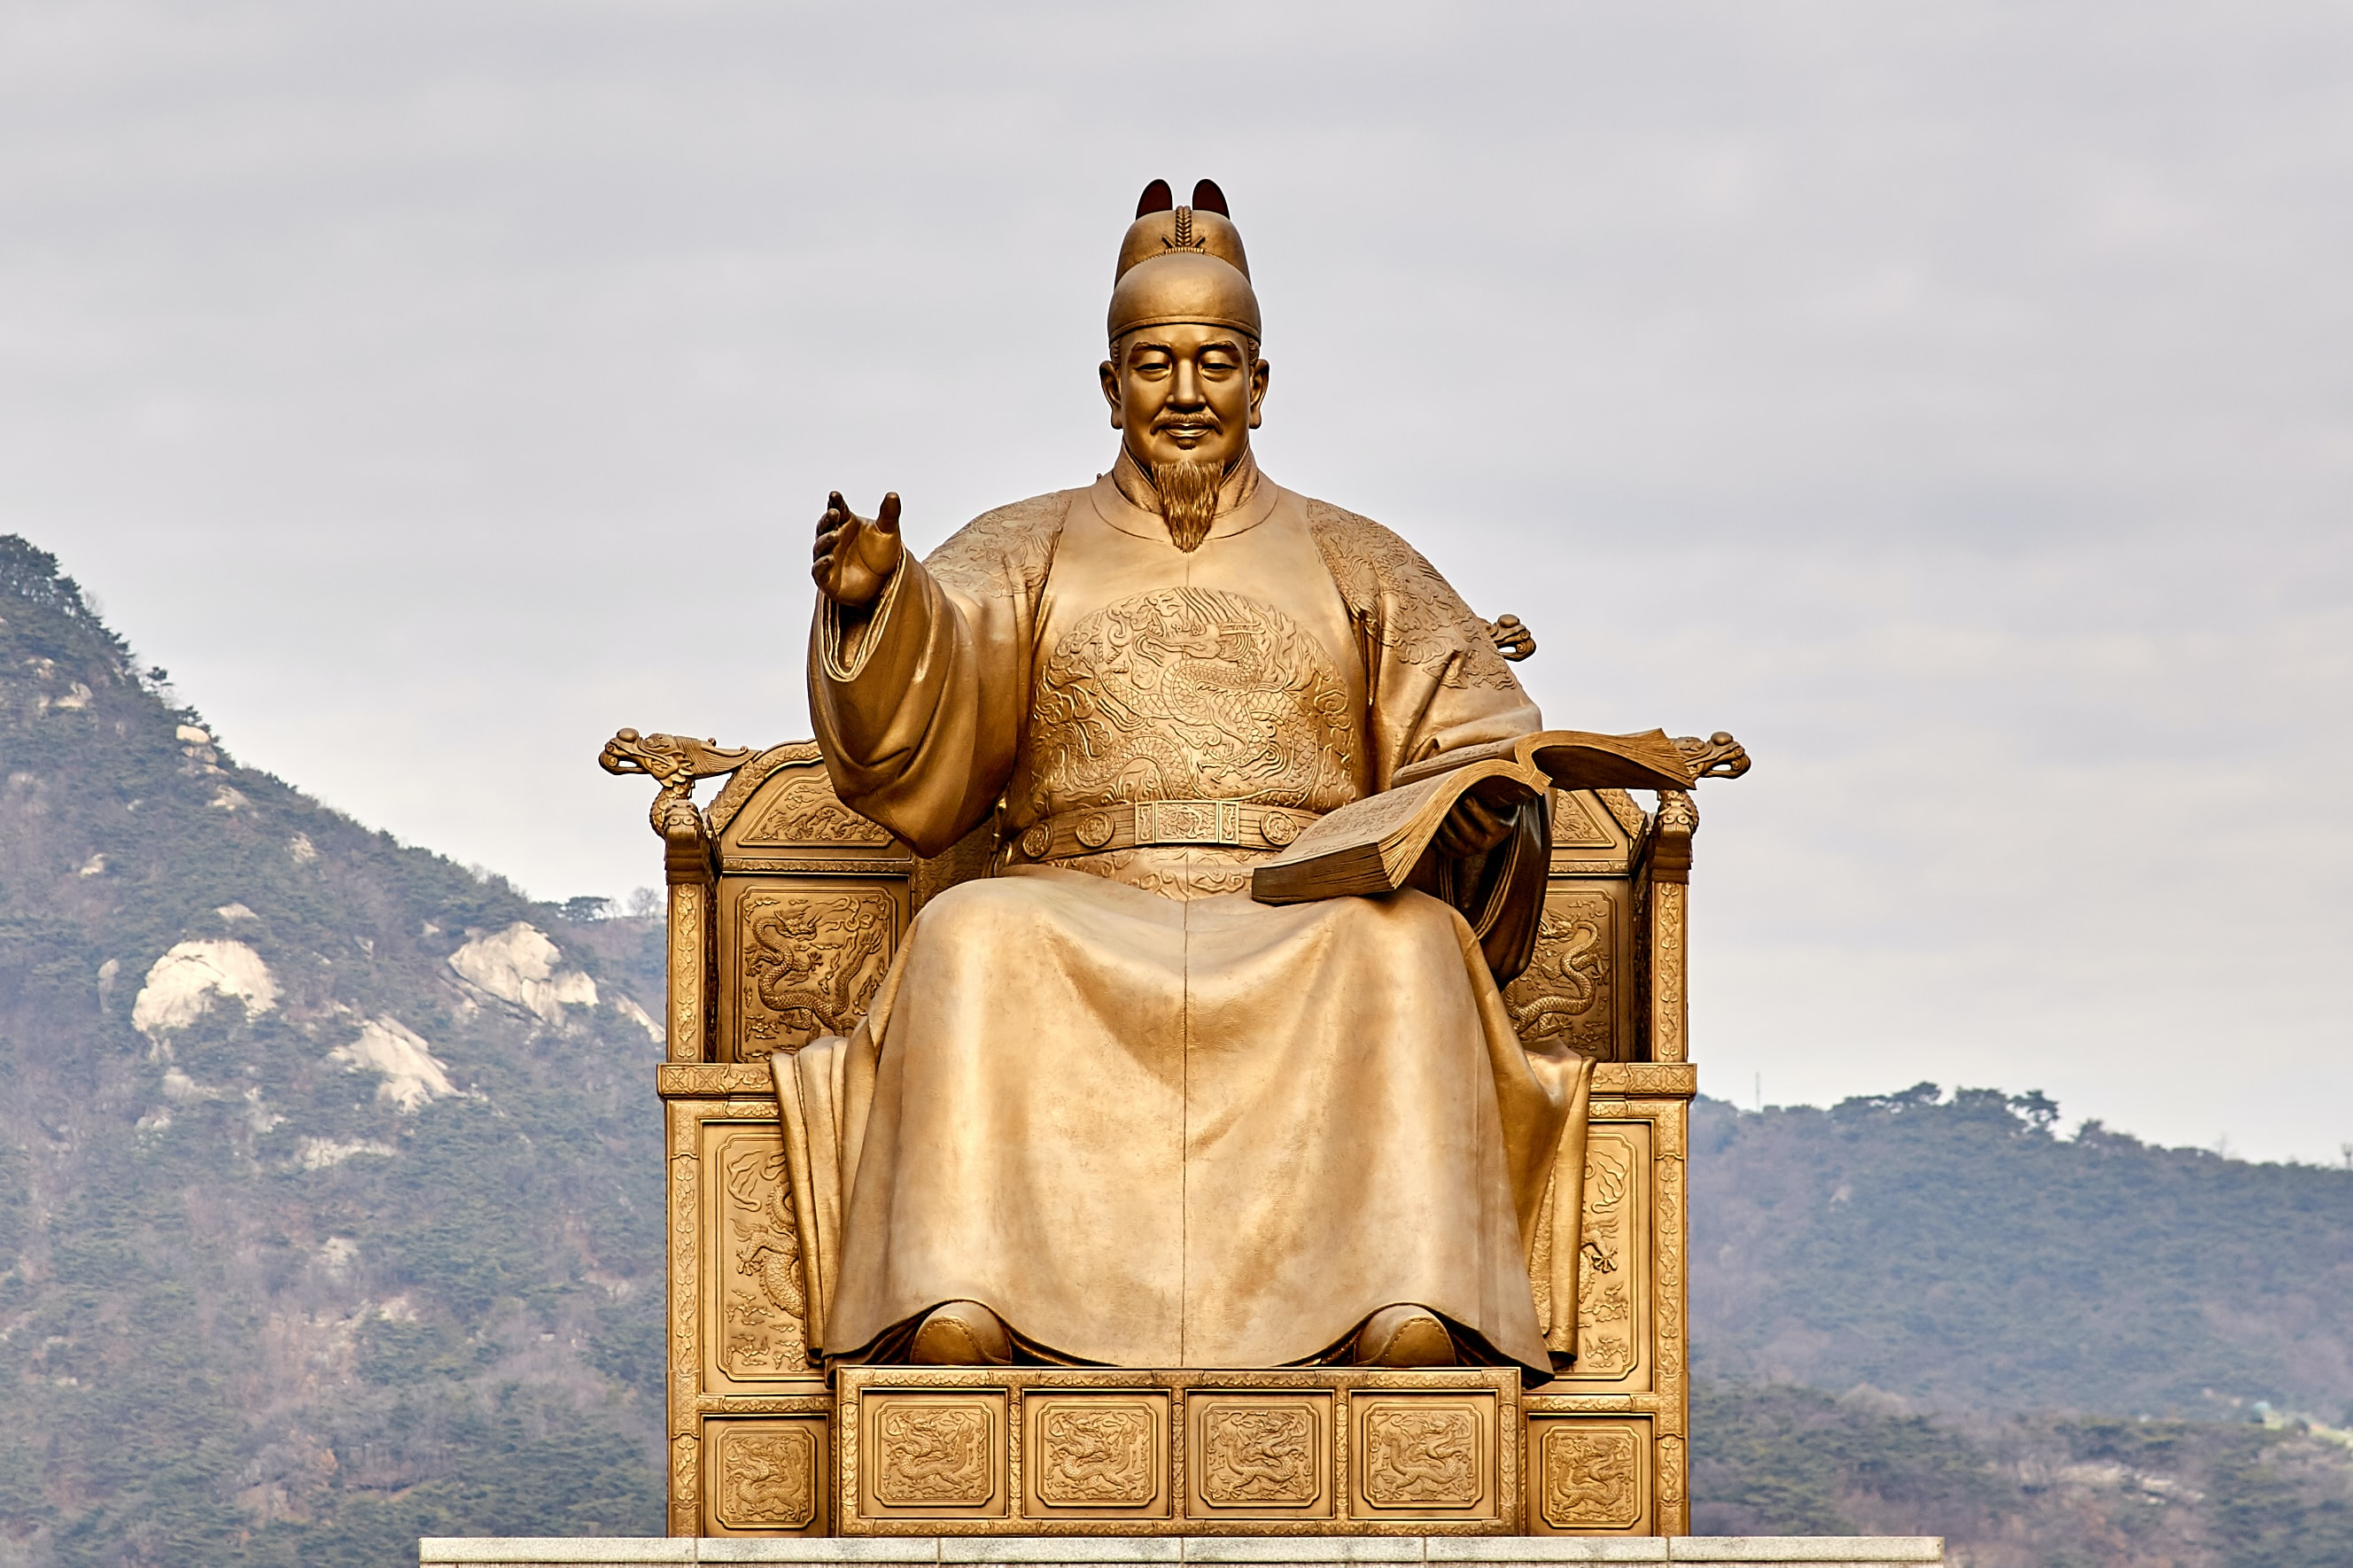 gold statue of man sitting on throne